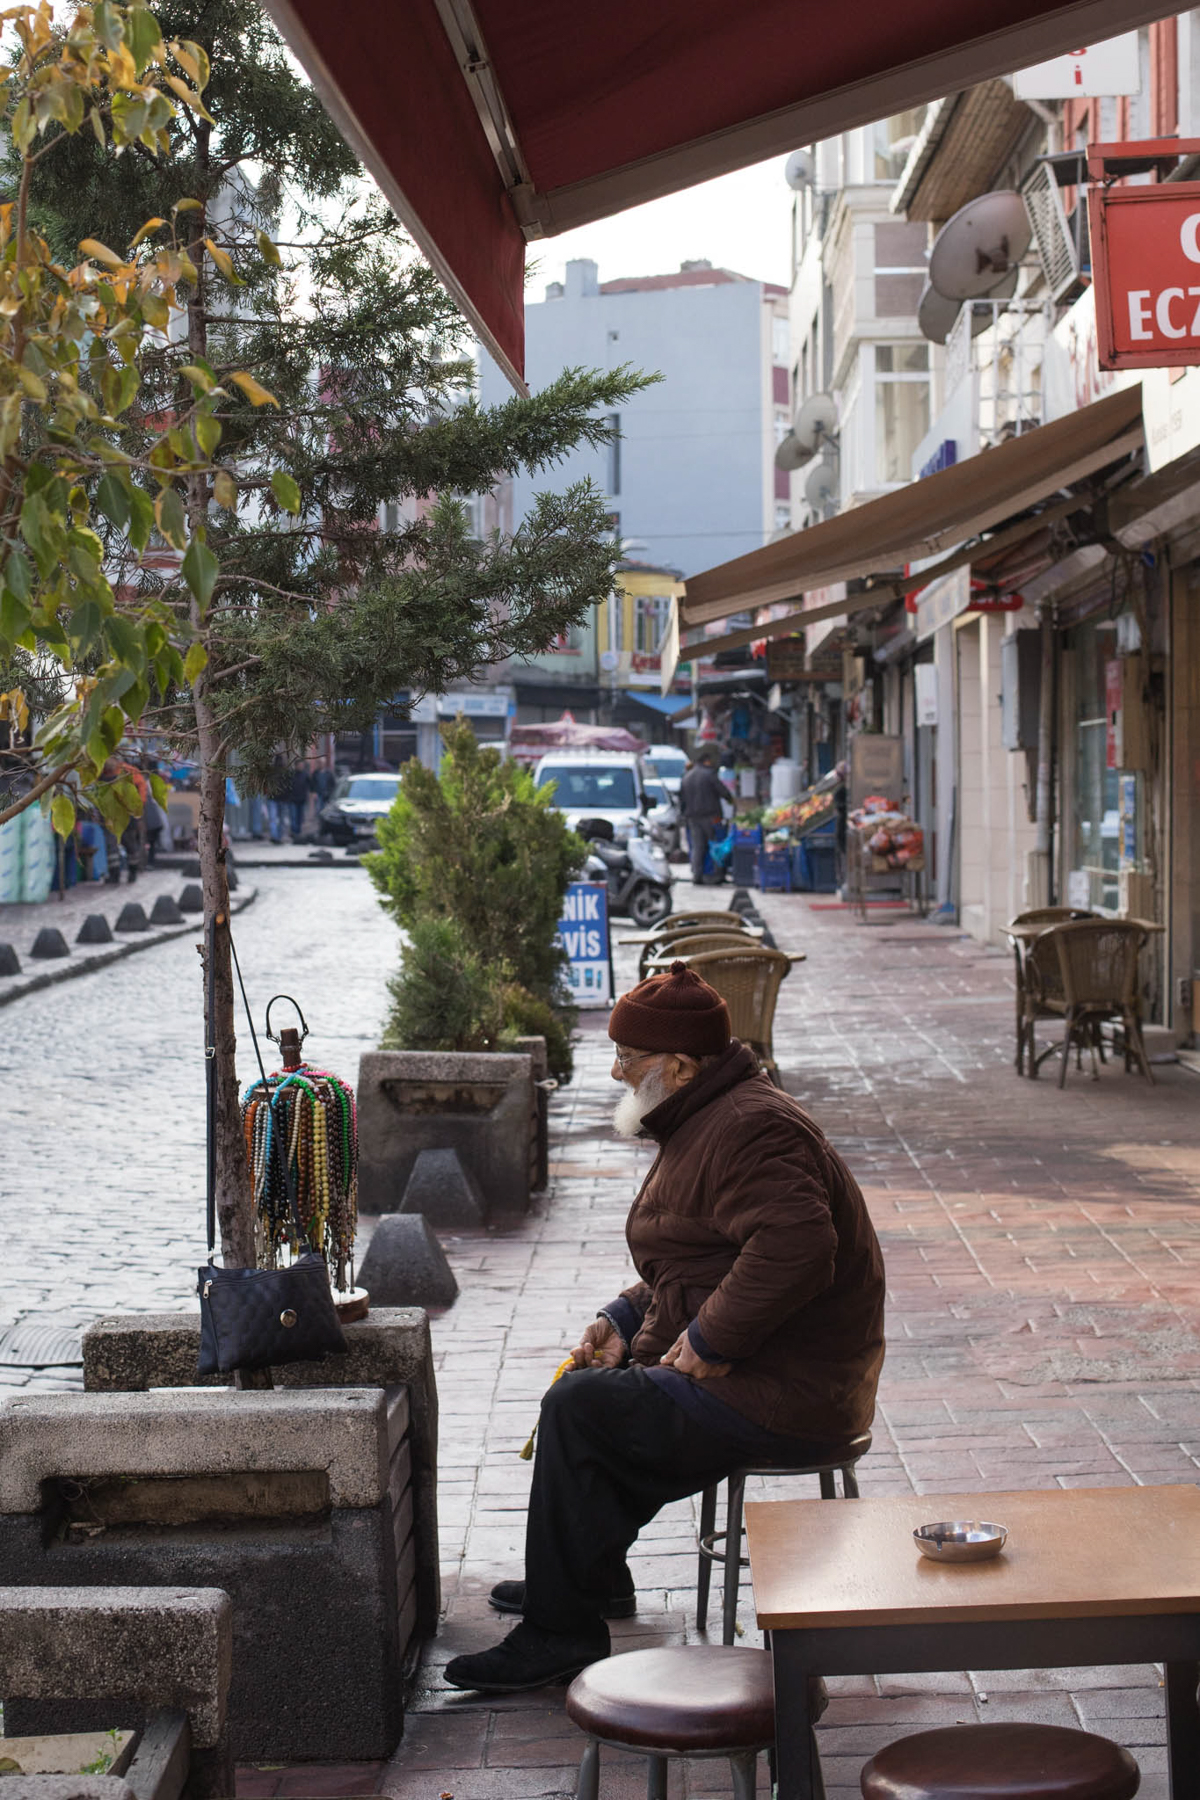 I don't know how the men in Istanbul make money when all they seem to do is sit on these miniature stools and drink tea all day!